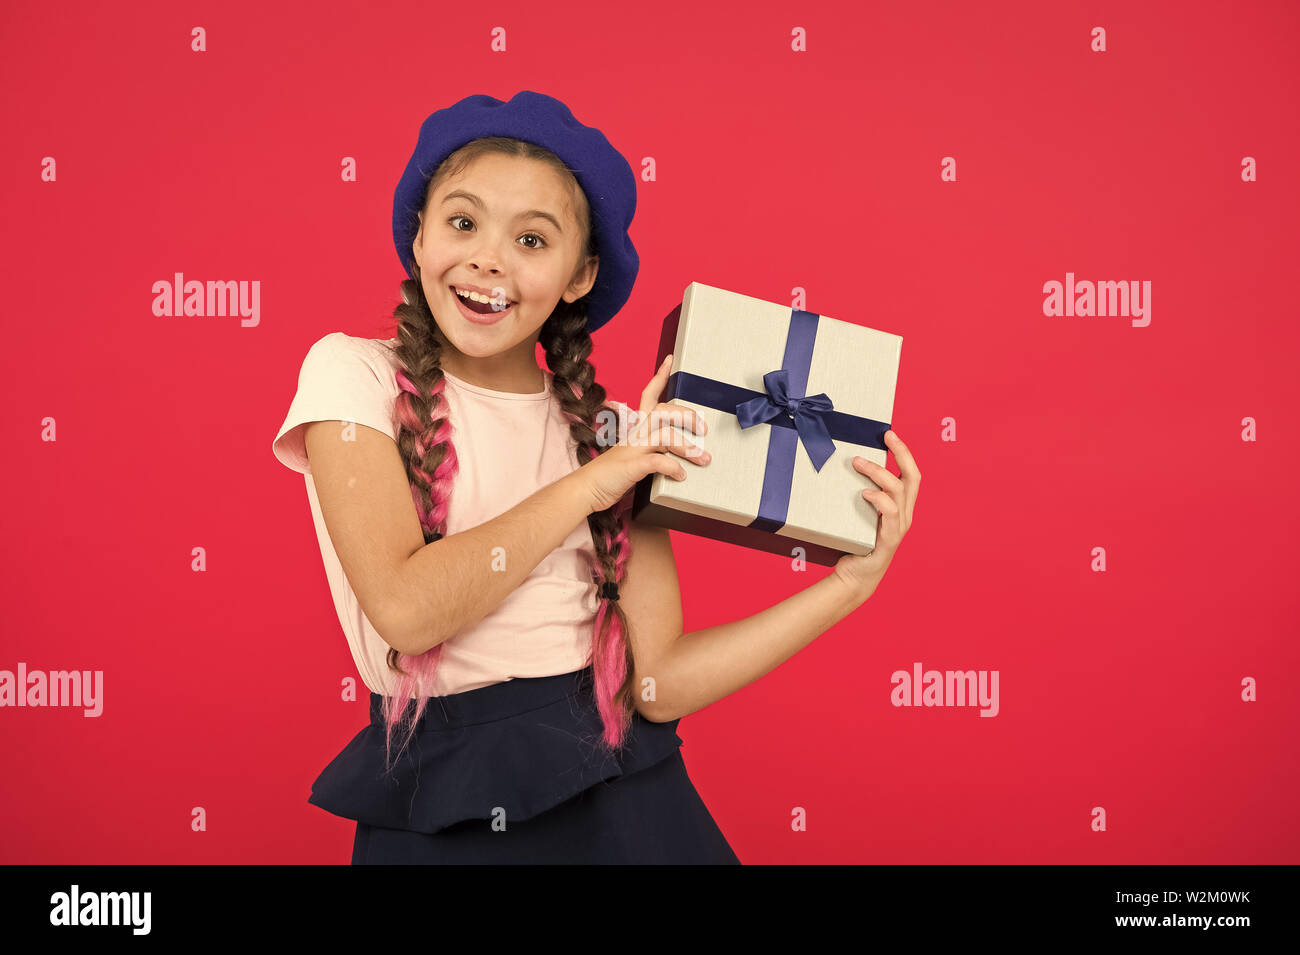 1d3bbdc11f45 Best christmas gifts. Child excited about unpacking her gift. Kid ...